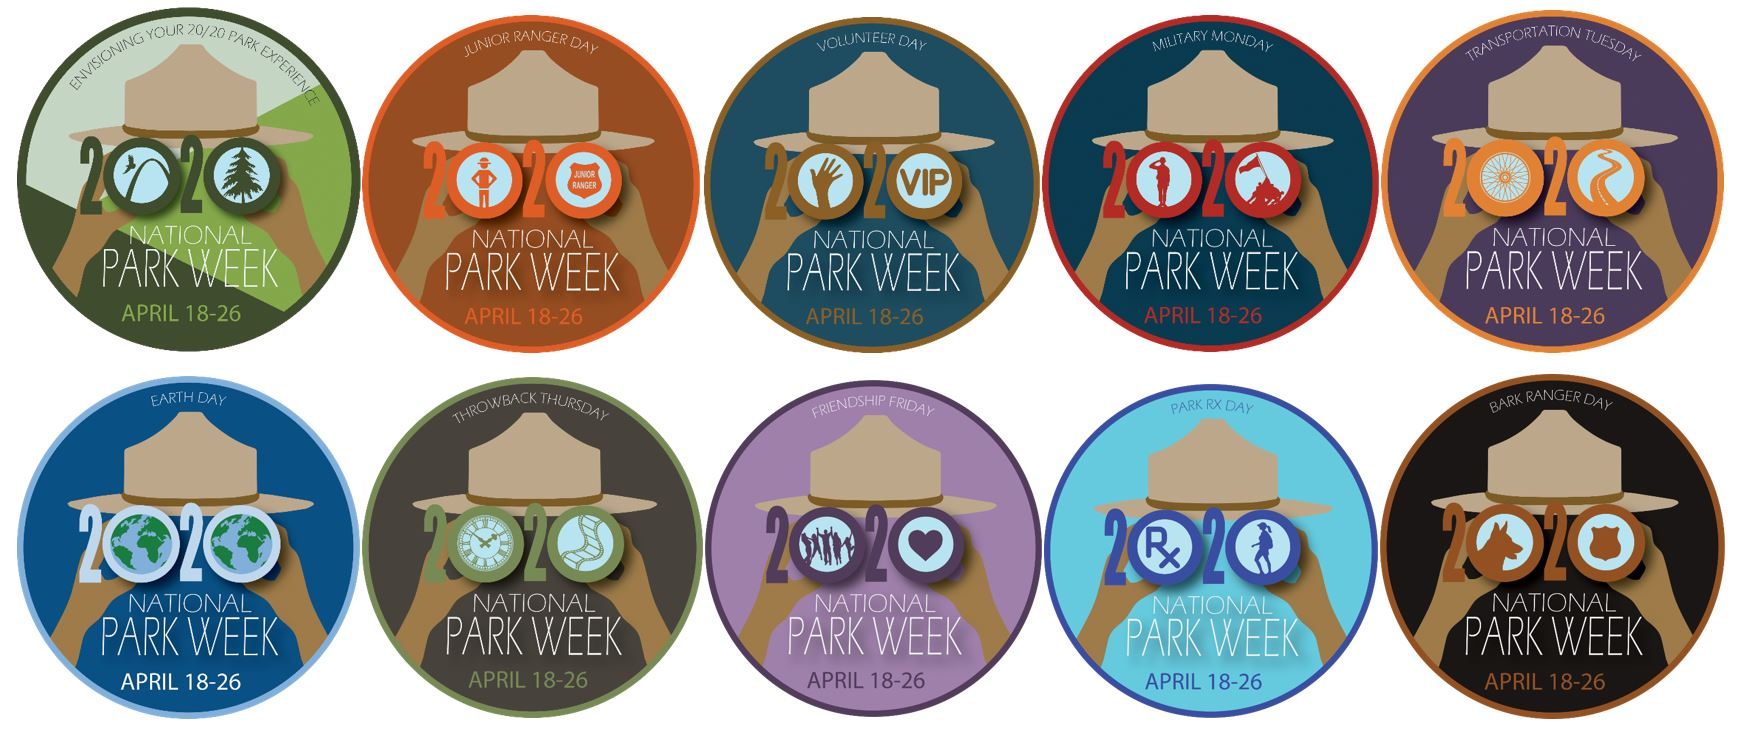 National Park Week Inspired Checklist Of 20 Virtual Ideas For 2020 U S National Park Service